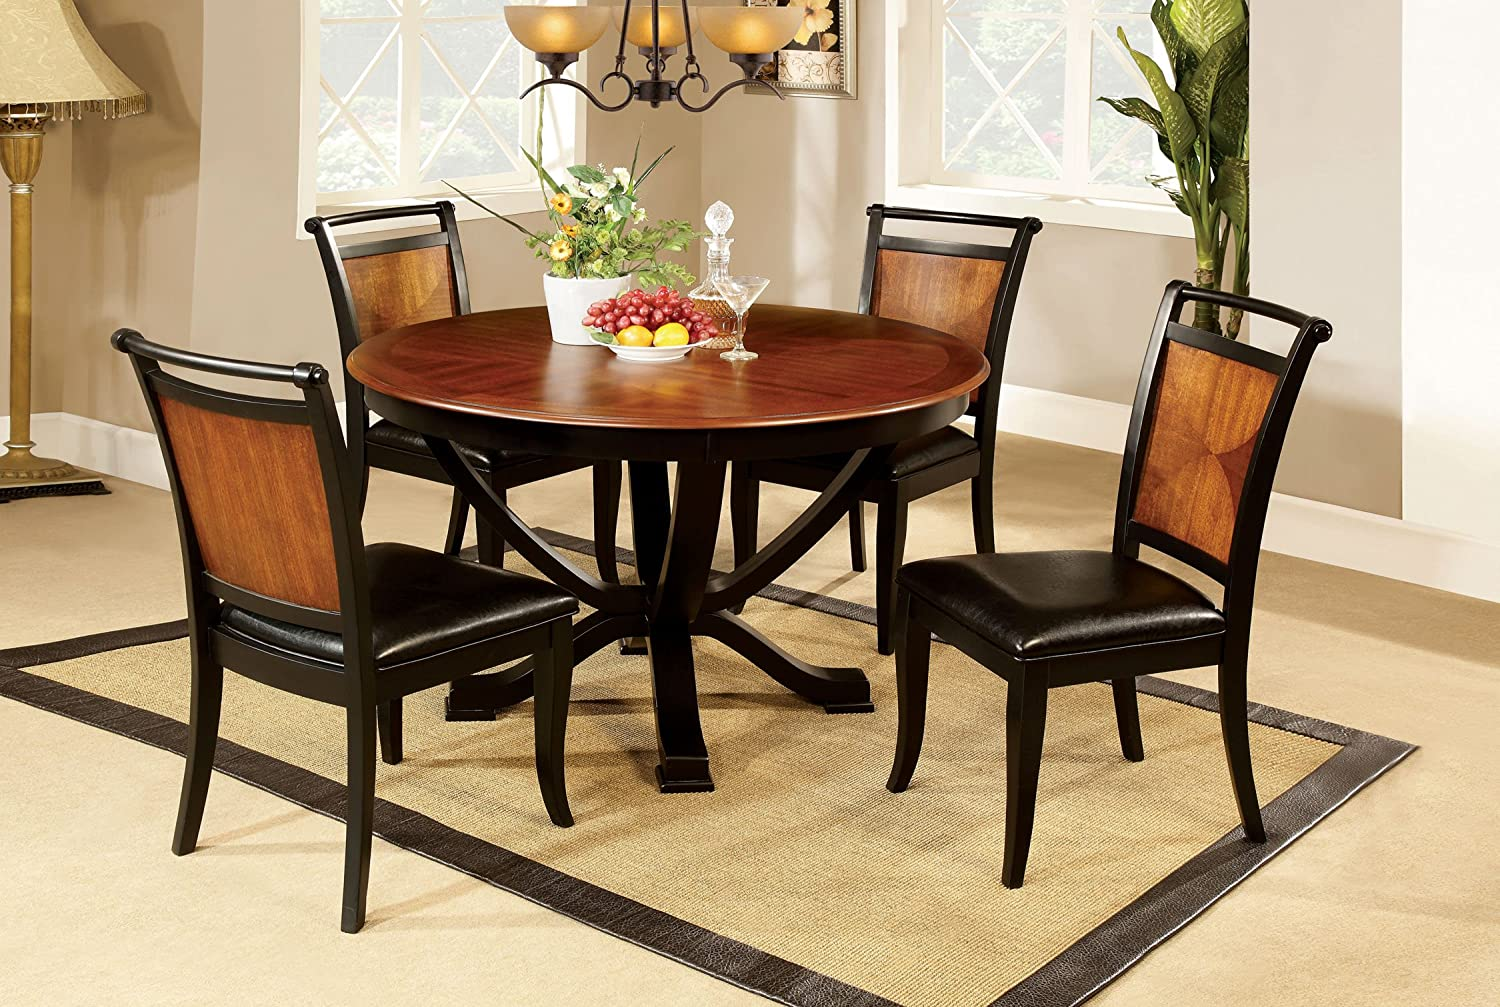 Amazon.com   Furniture Of America Sahrifa 5 Piece Duotone Round Dining  Table Set, Acacia And Black Finish   Table U0026 Chair Sets